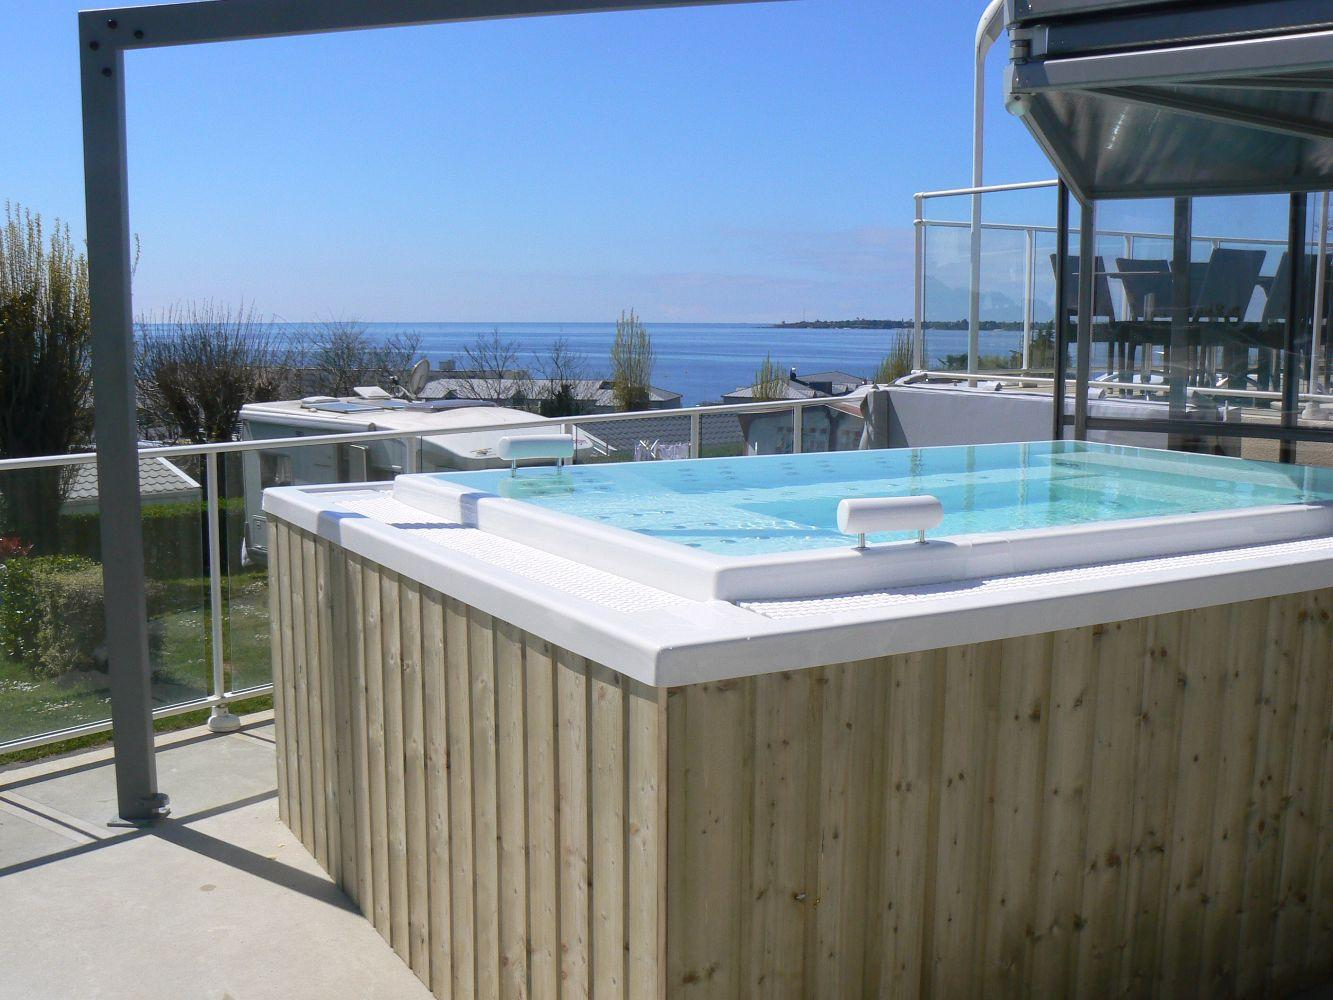 Camping concarneau spa couvert camping les sables blancs for Camping finistere sud bord de mer avec piscine